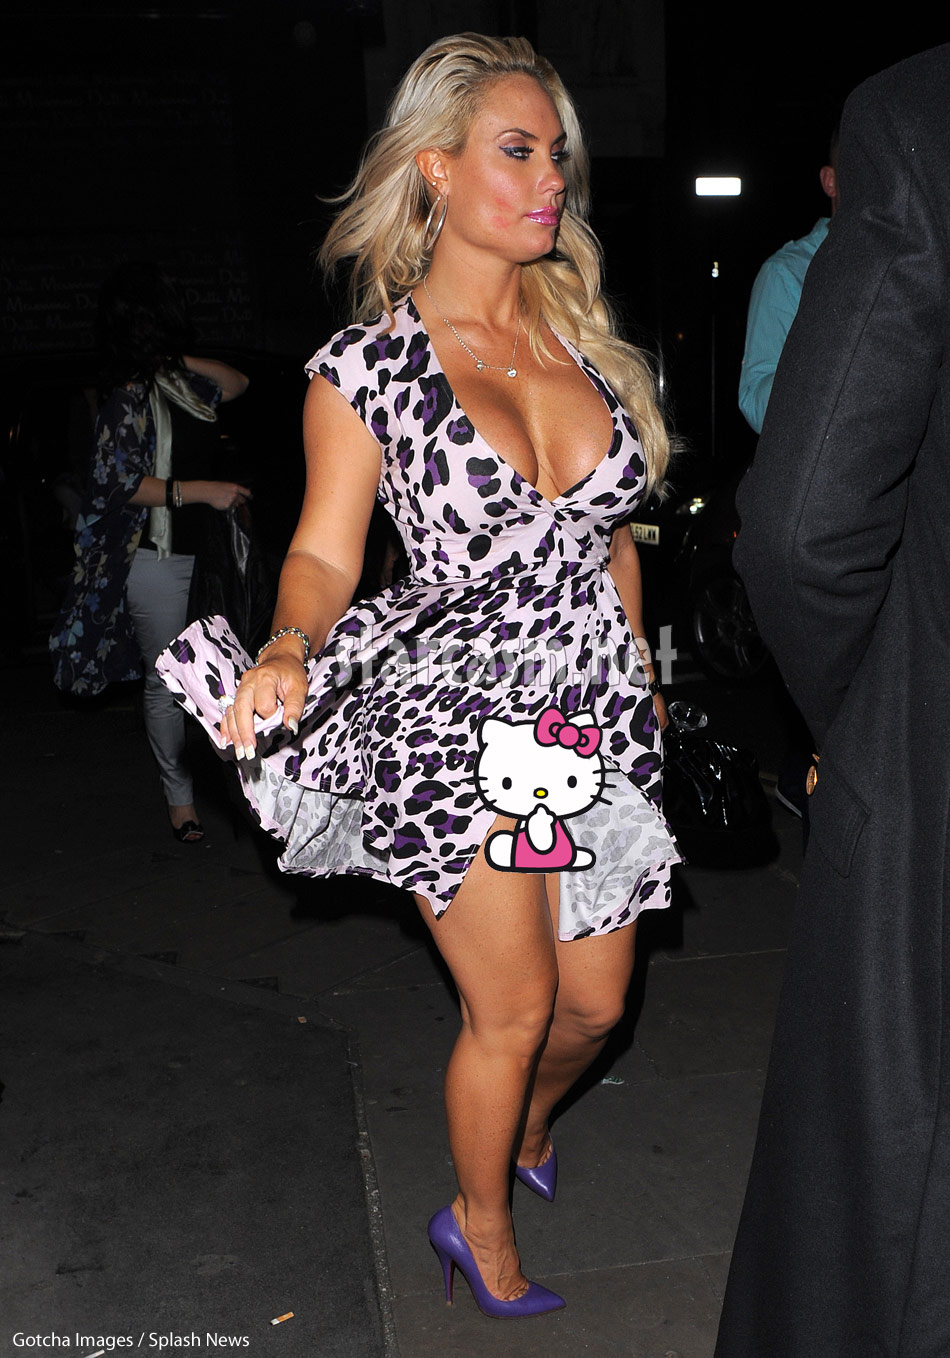 Coco Austin exposed without panties in London